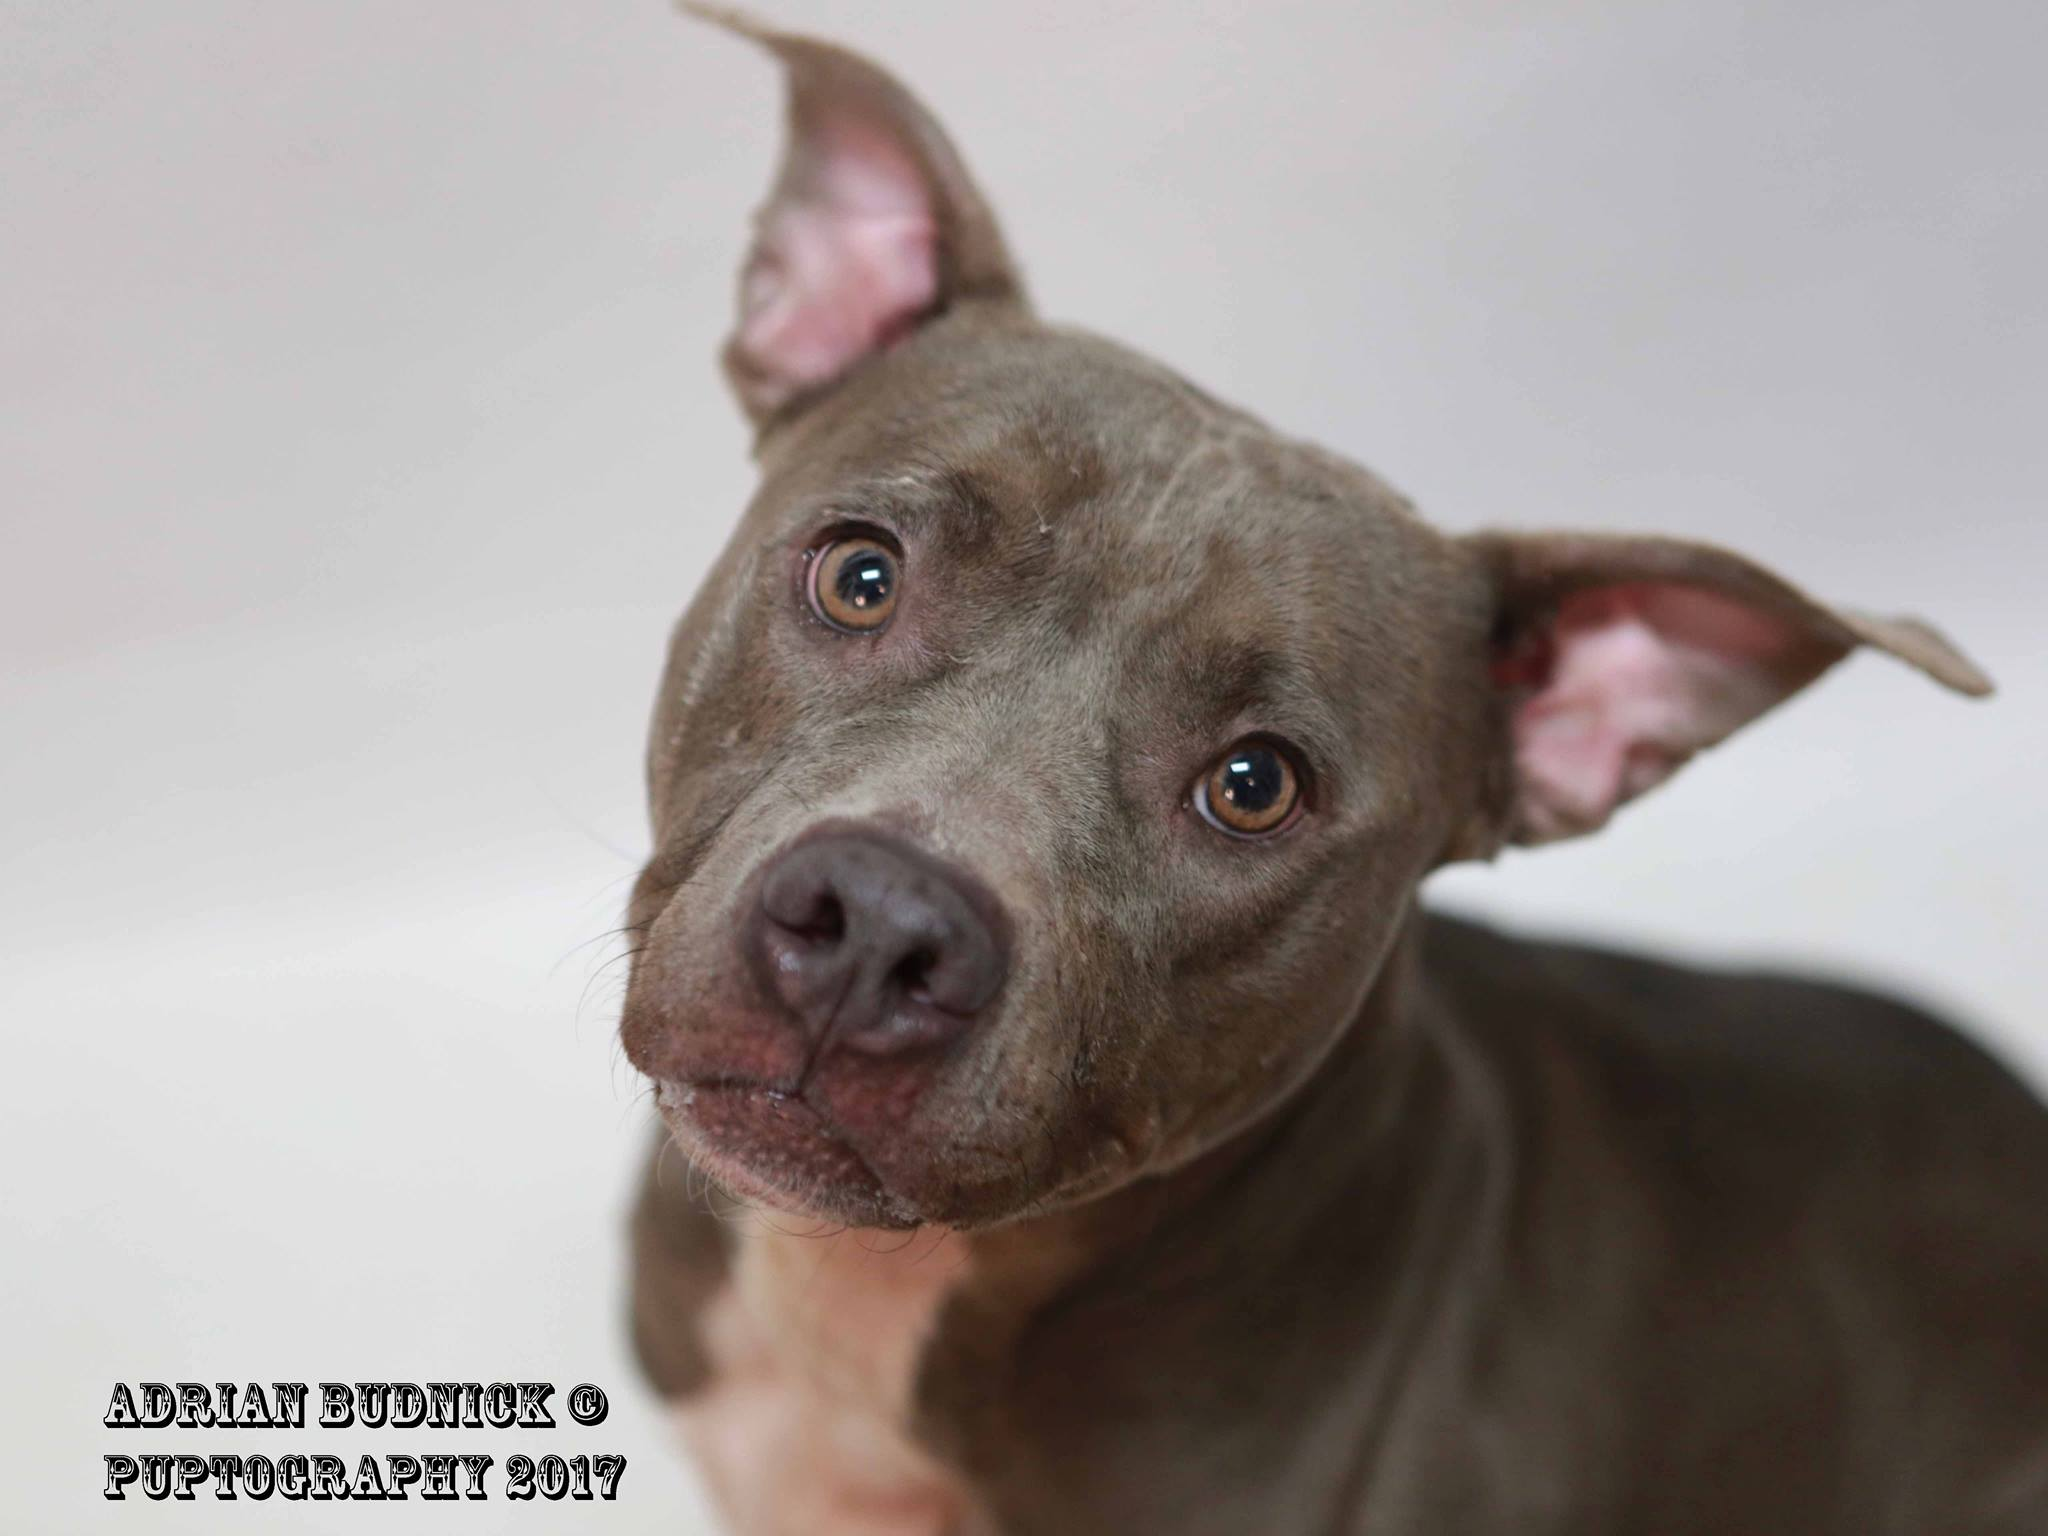 Ivy A128632 is a 2 year old pit bull. She is available at Metro Nashville Animal Care and Control